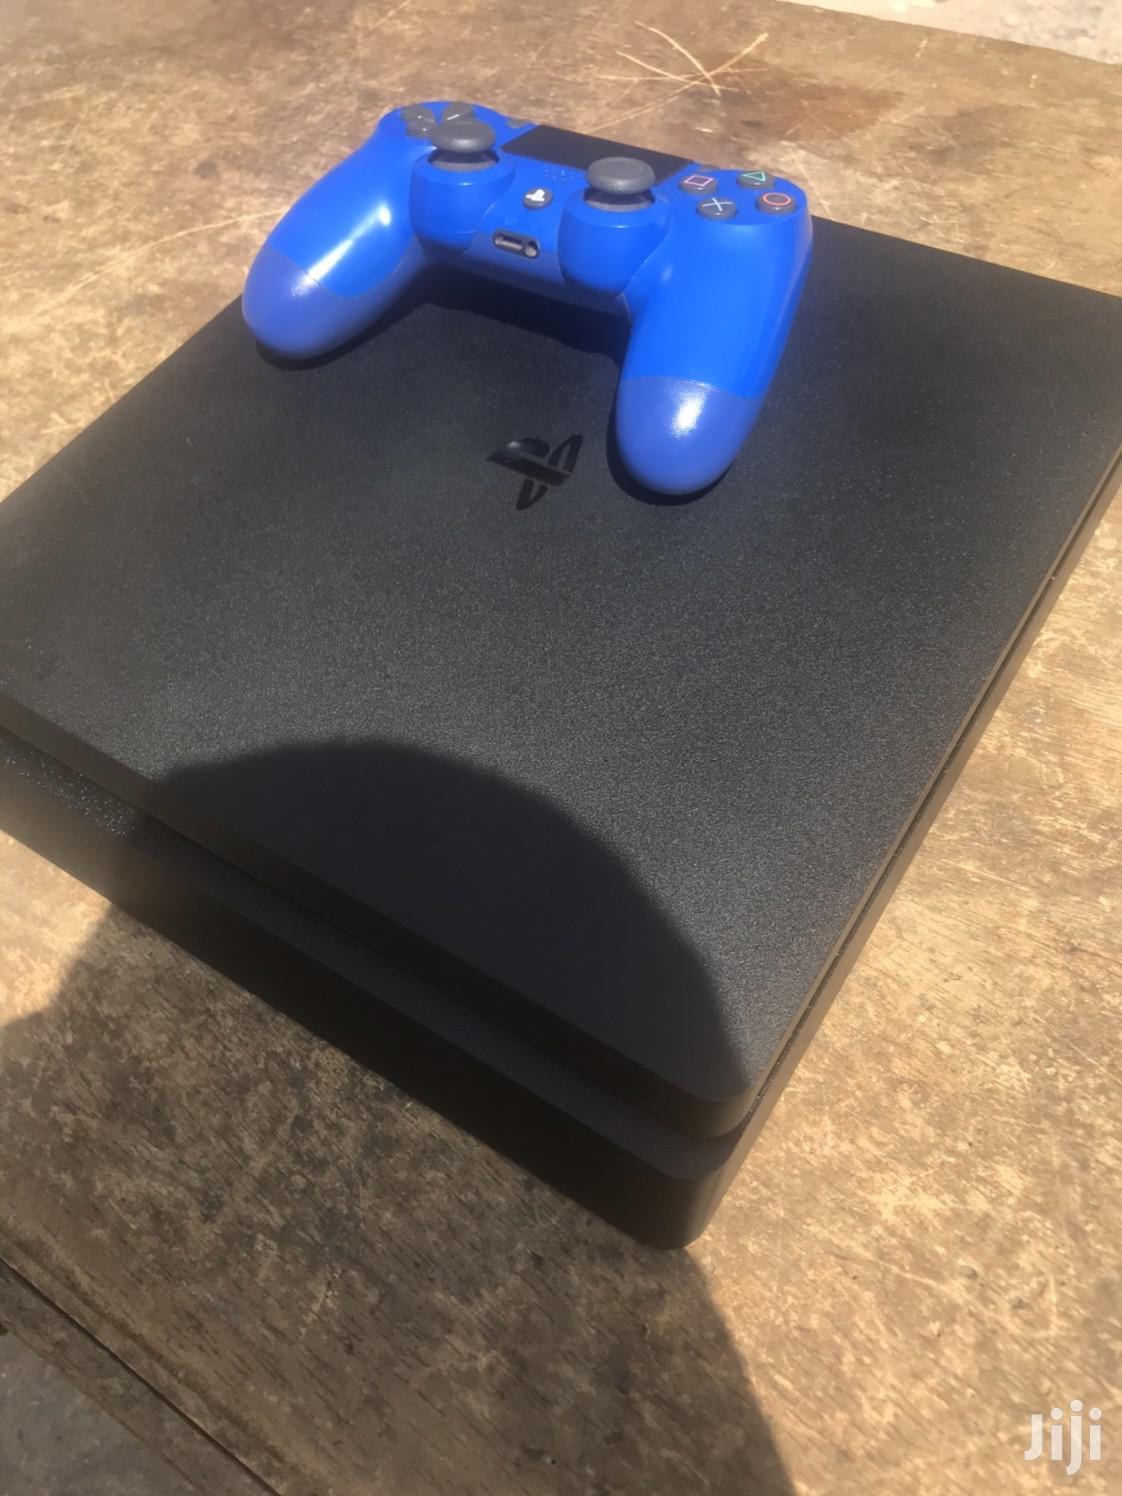 Archive: Slightly Used Ps4 Slim 1tb With One Controller (Very Neat)